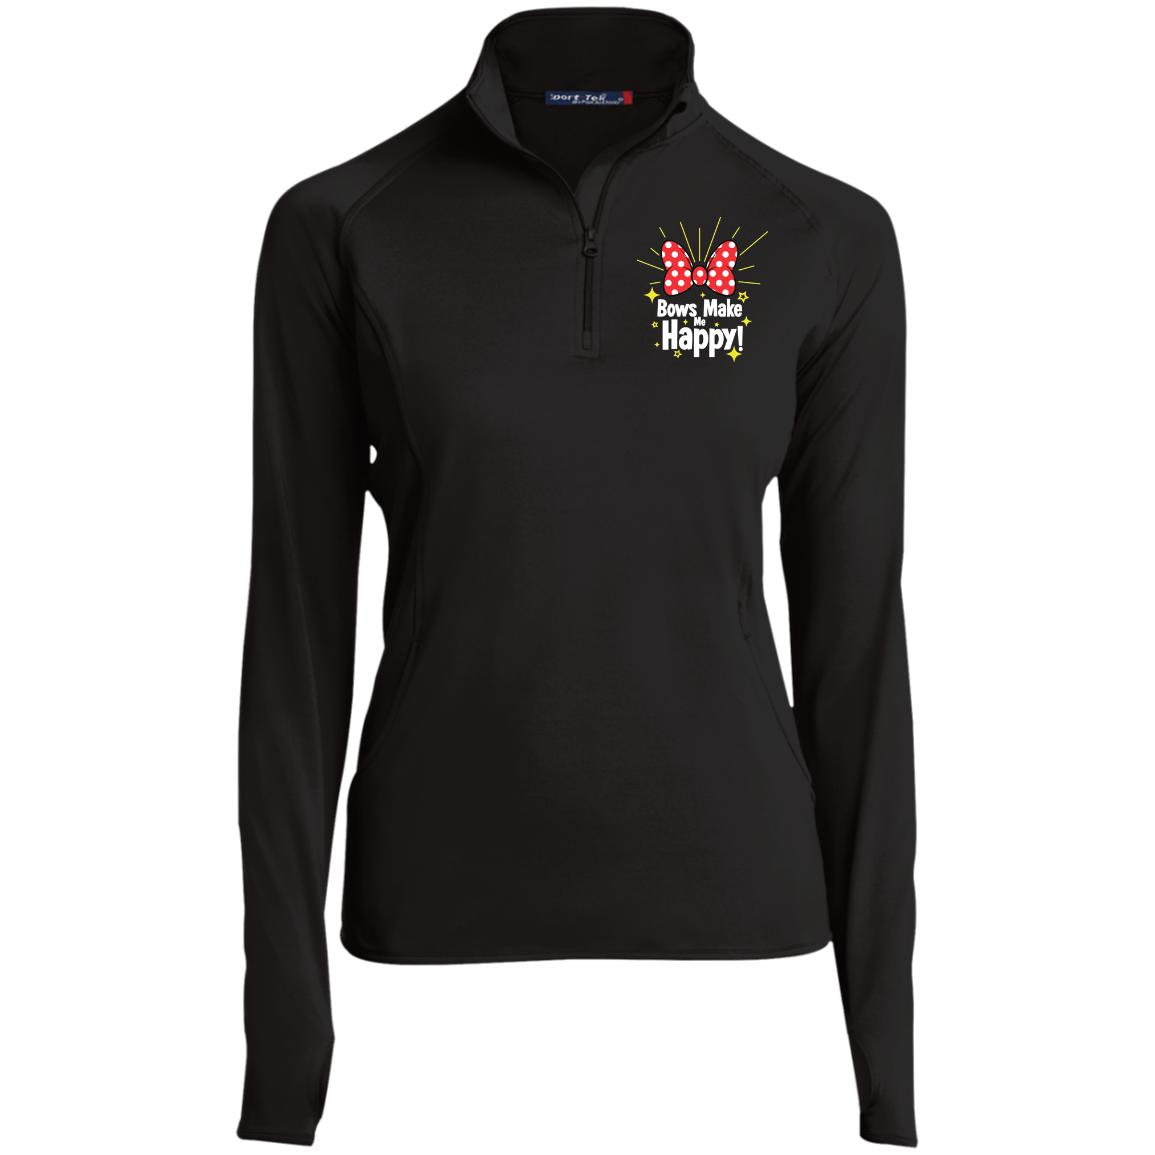 Bows Make Me Happy - Embroidered Sport-Tek Women's 1/2 Zip Performance Pullover